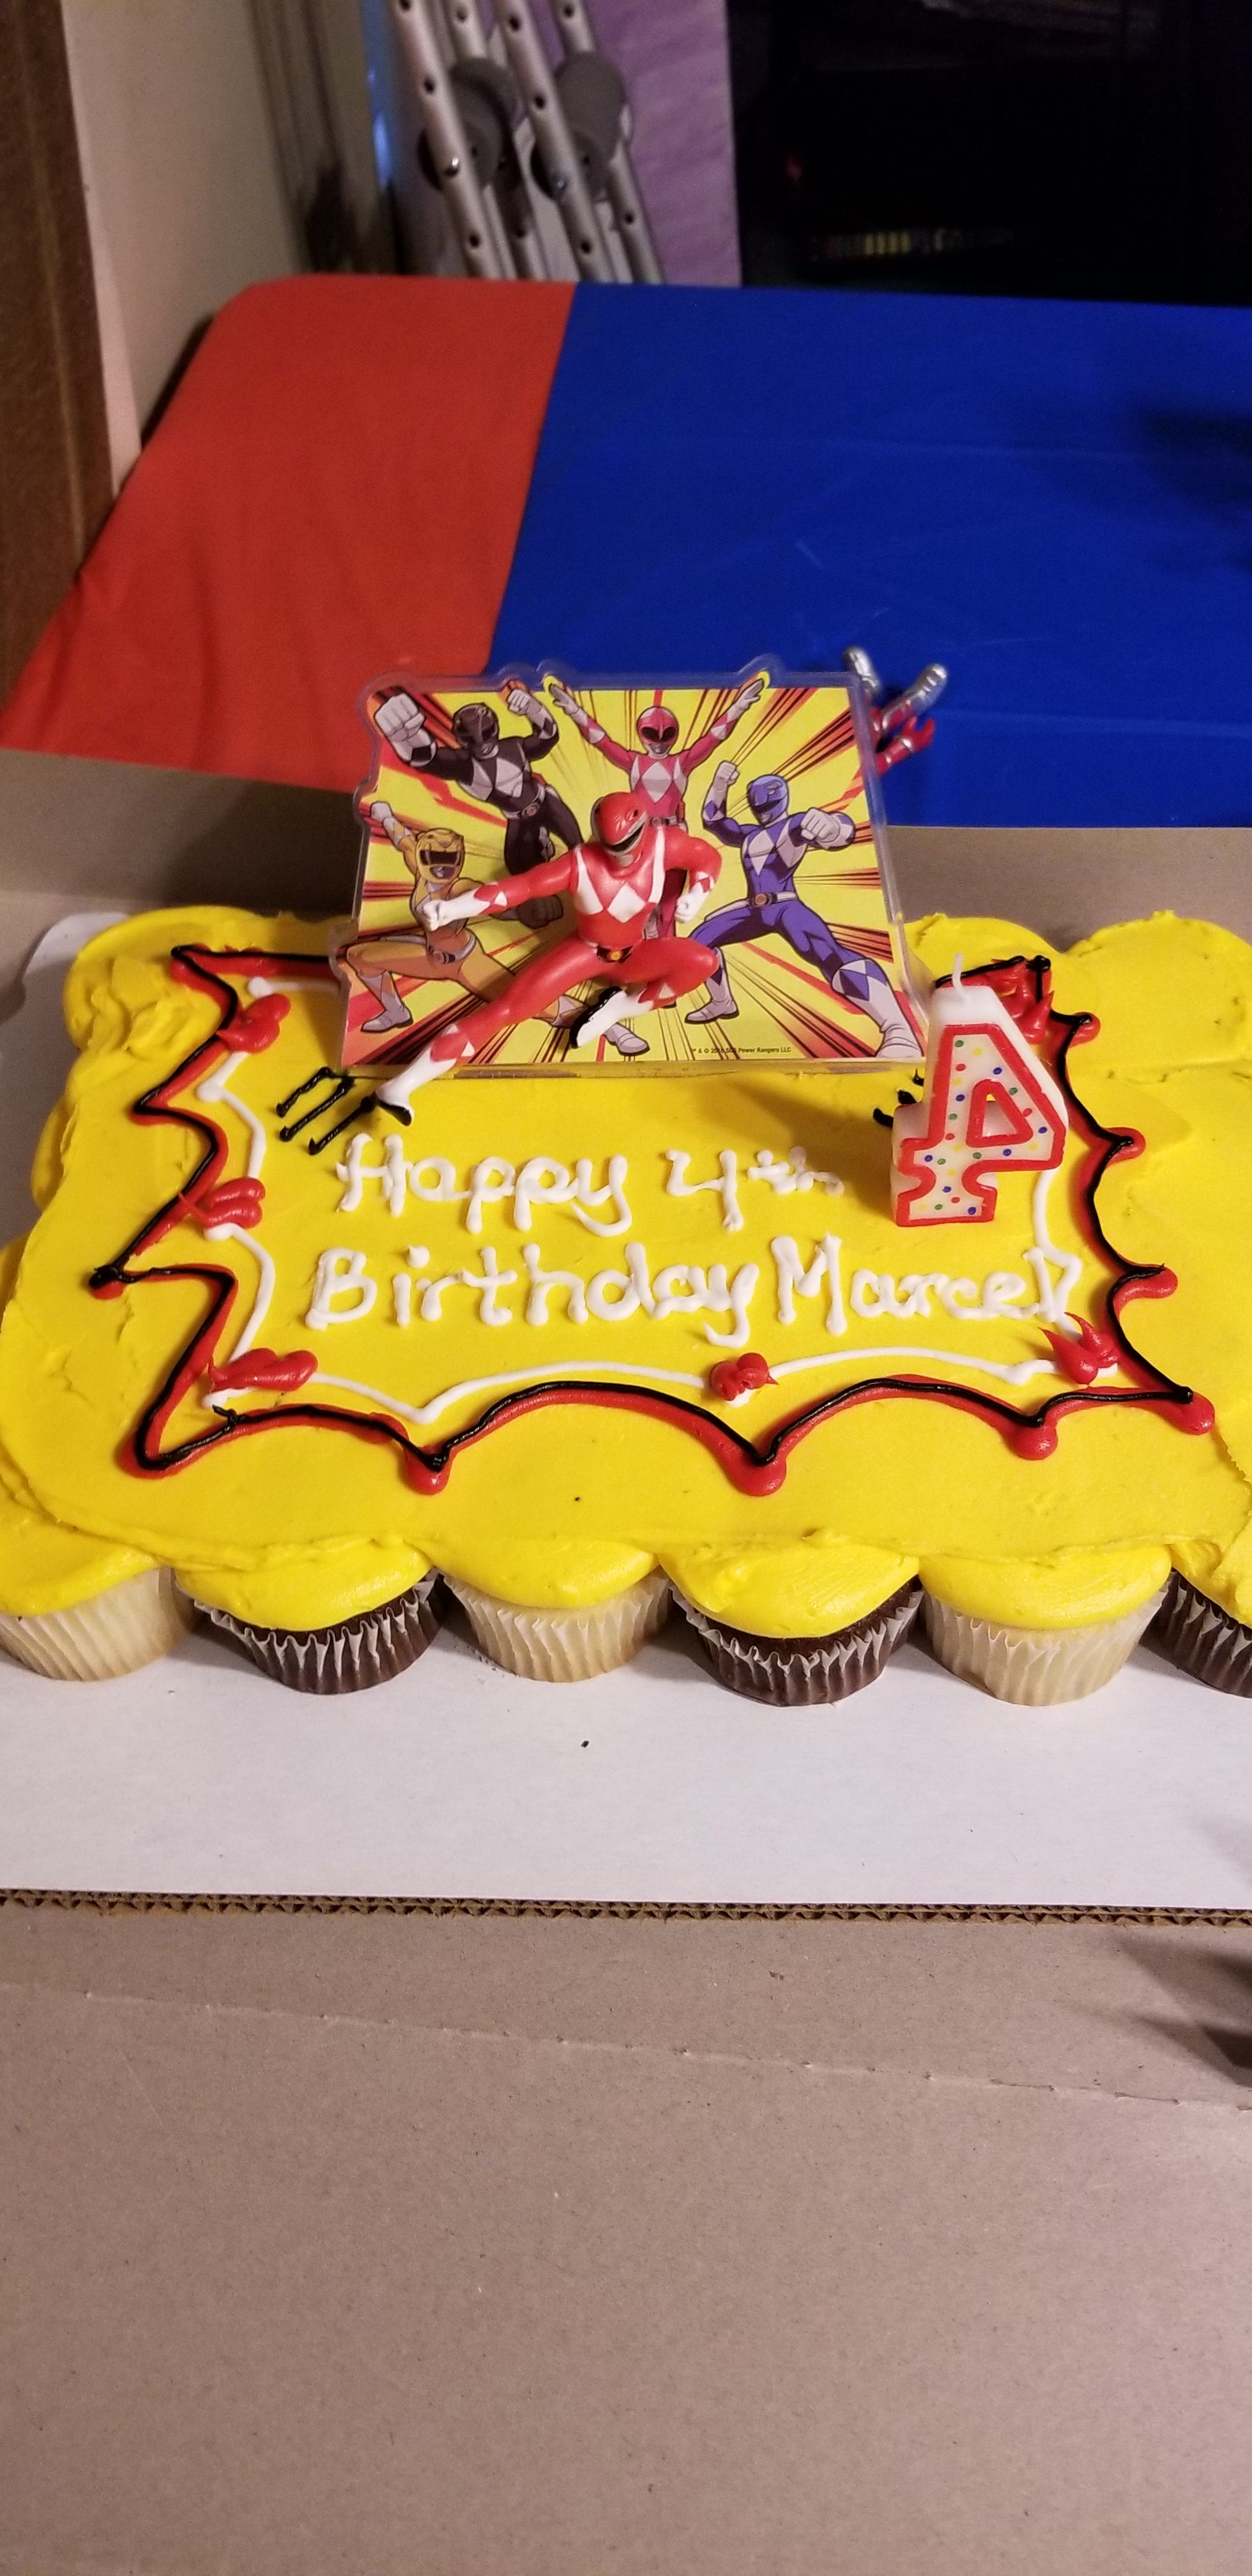 Pleasing The Cupcake Cake Ordered At Walmart Power Ranger Party Personalised Birthday Cards Paralily Jamesorg